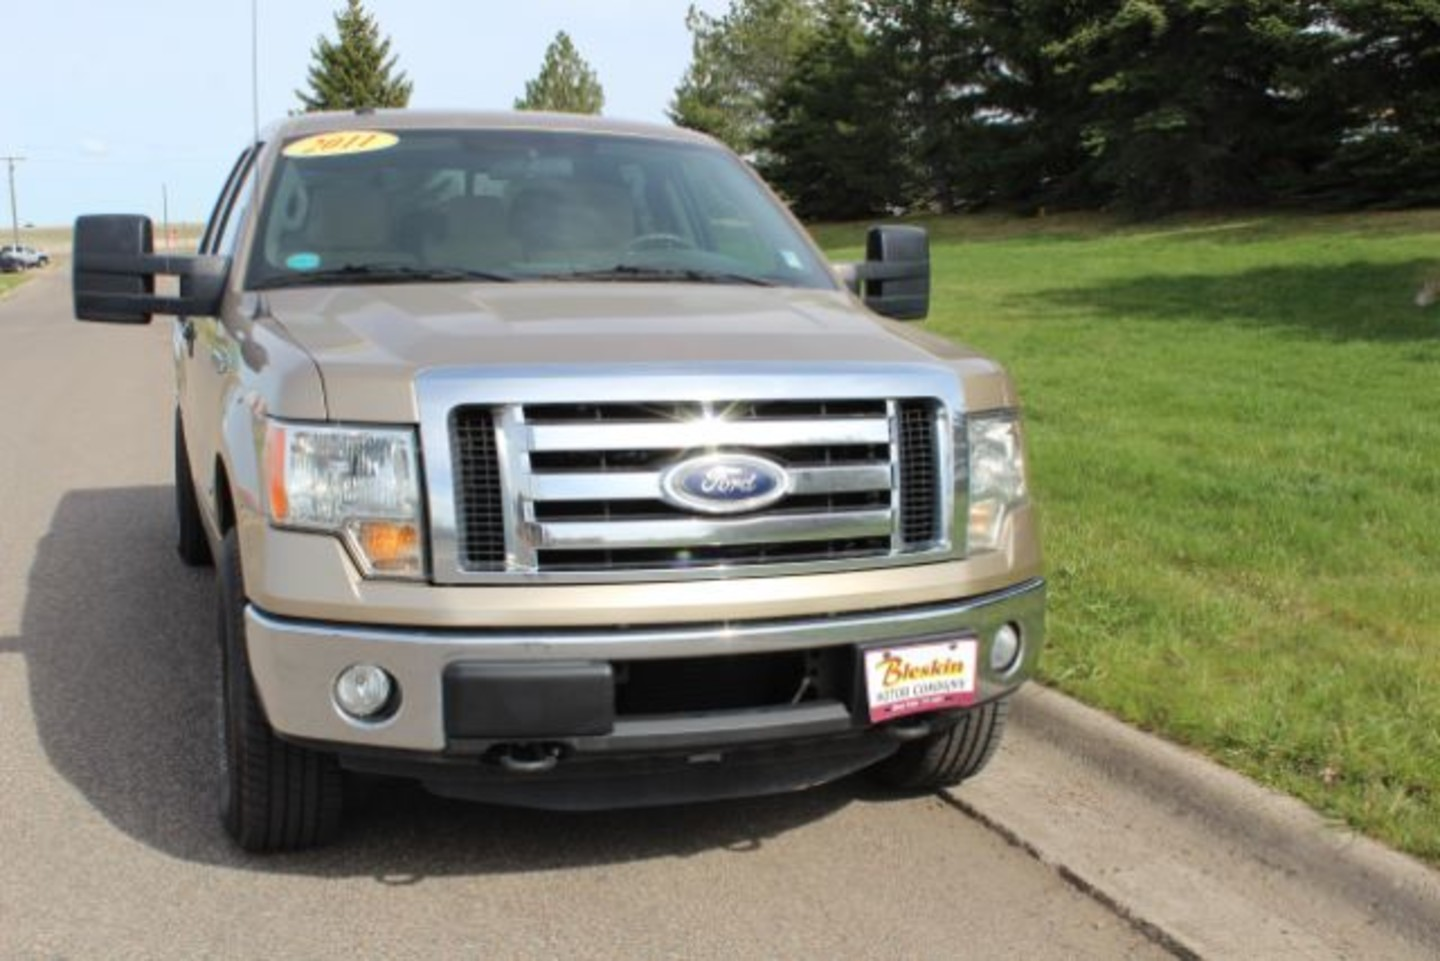 2011 Ford F 150 Xl Supercrew 55 Ft Bed 4wd City Mt Bleskin